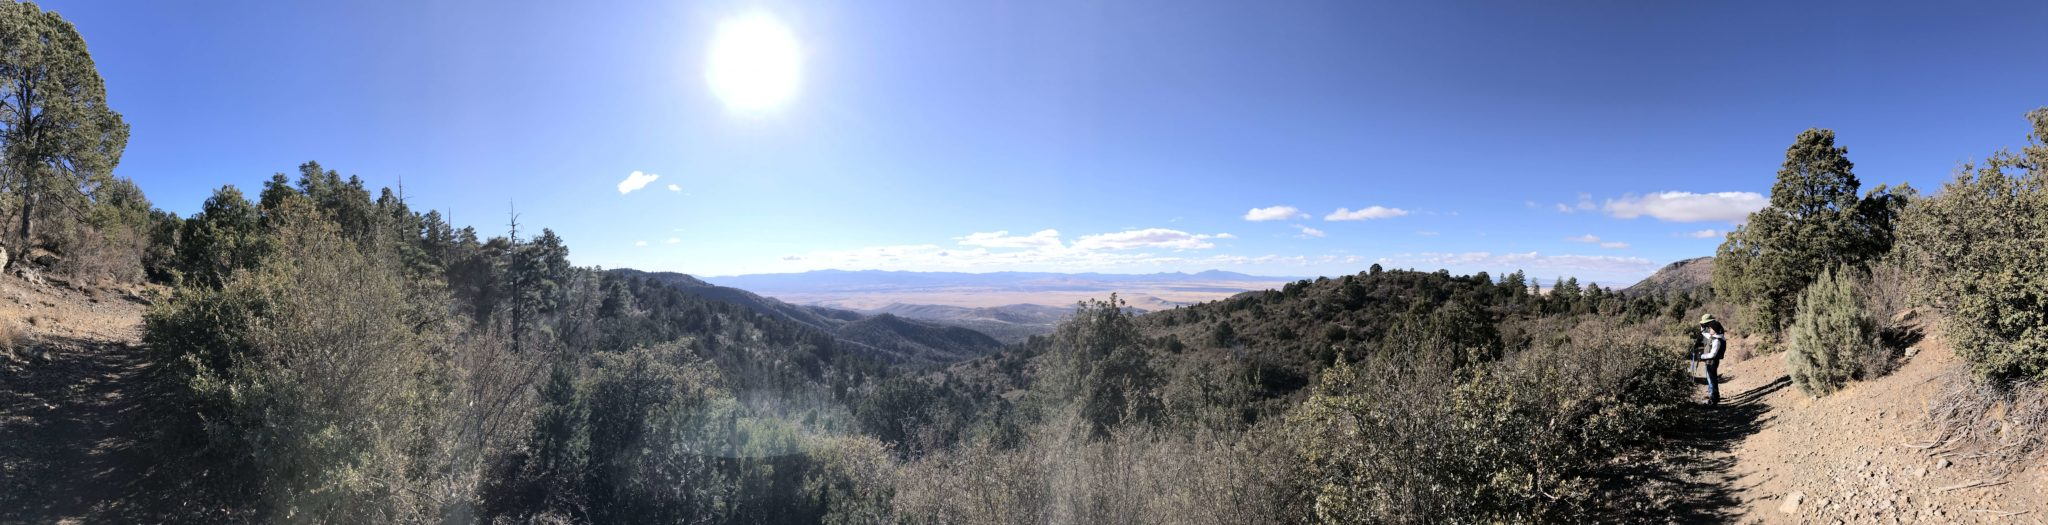 pano from the trail